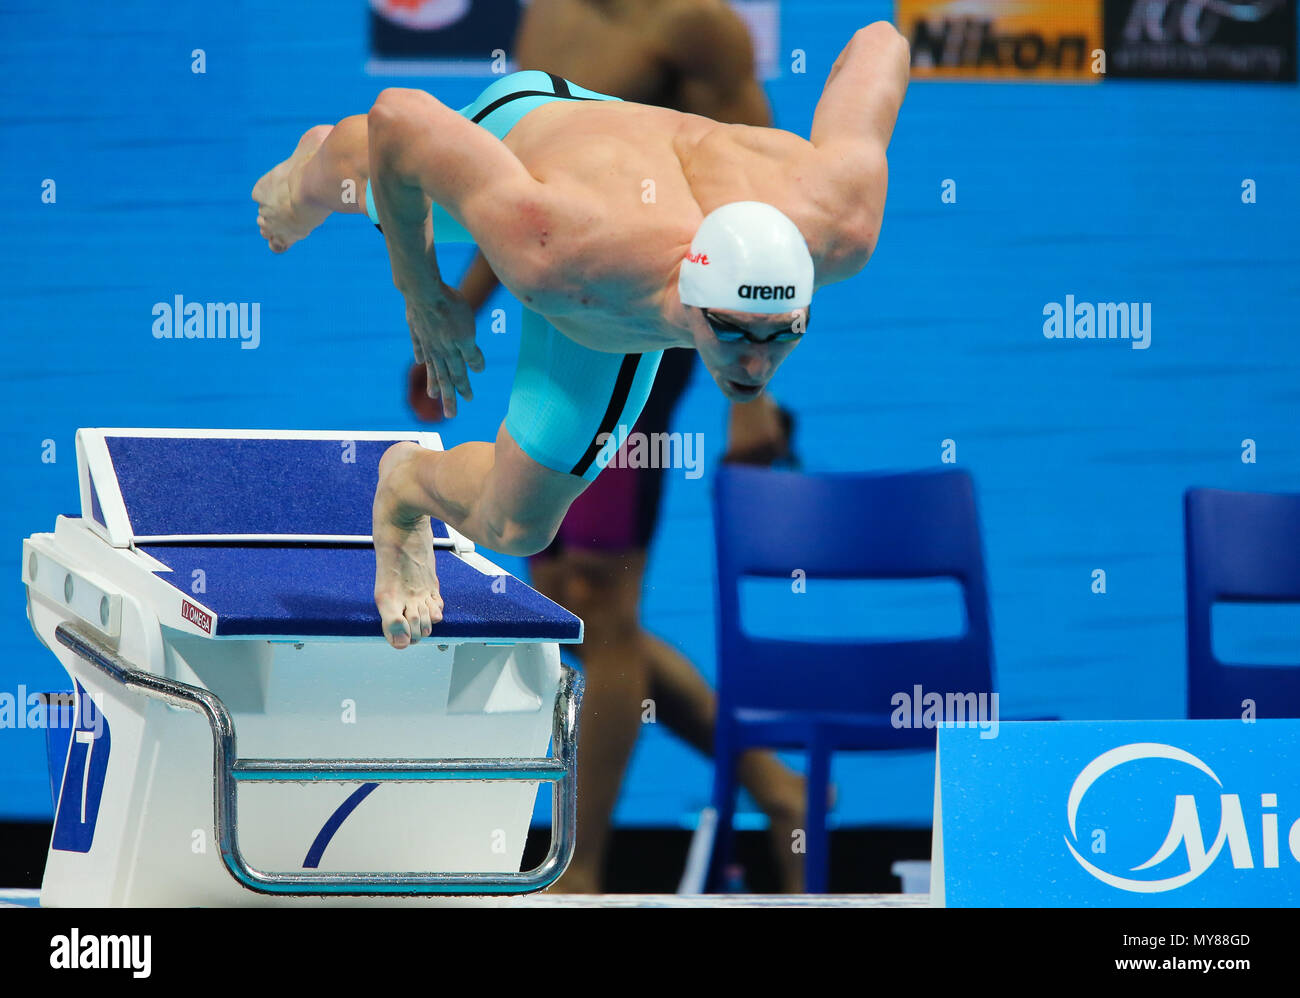 BUDAPEST, HUNGARY - JULY 26: Danila Izotov of Russia in the heats of the mens 100m freestyle during day 13 of the FINA World Championships at Duna Arena on July 26, 2017 in Budapest, Hungary. (Photo by Roger Sedres/ImageSA/Gallo Images) - Stock Image